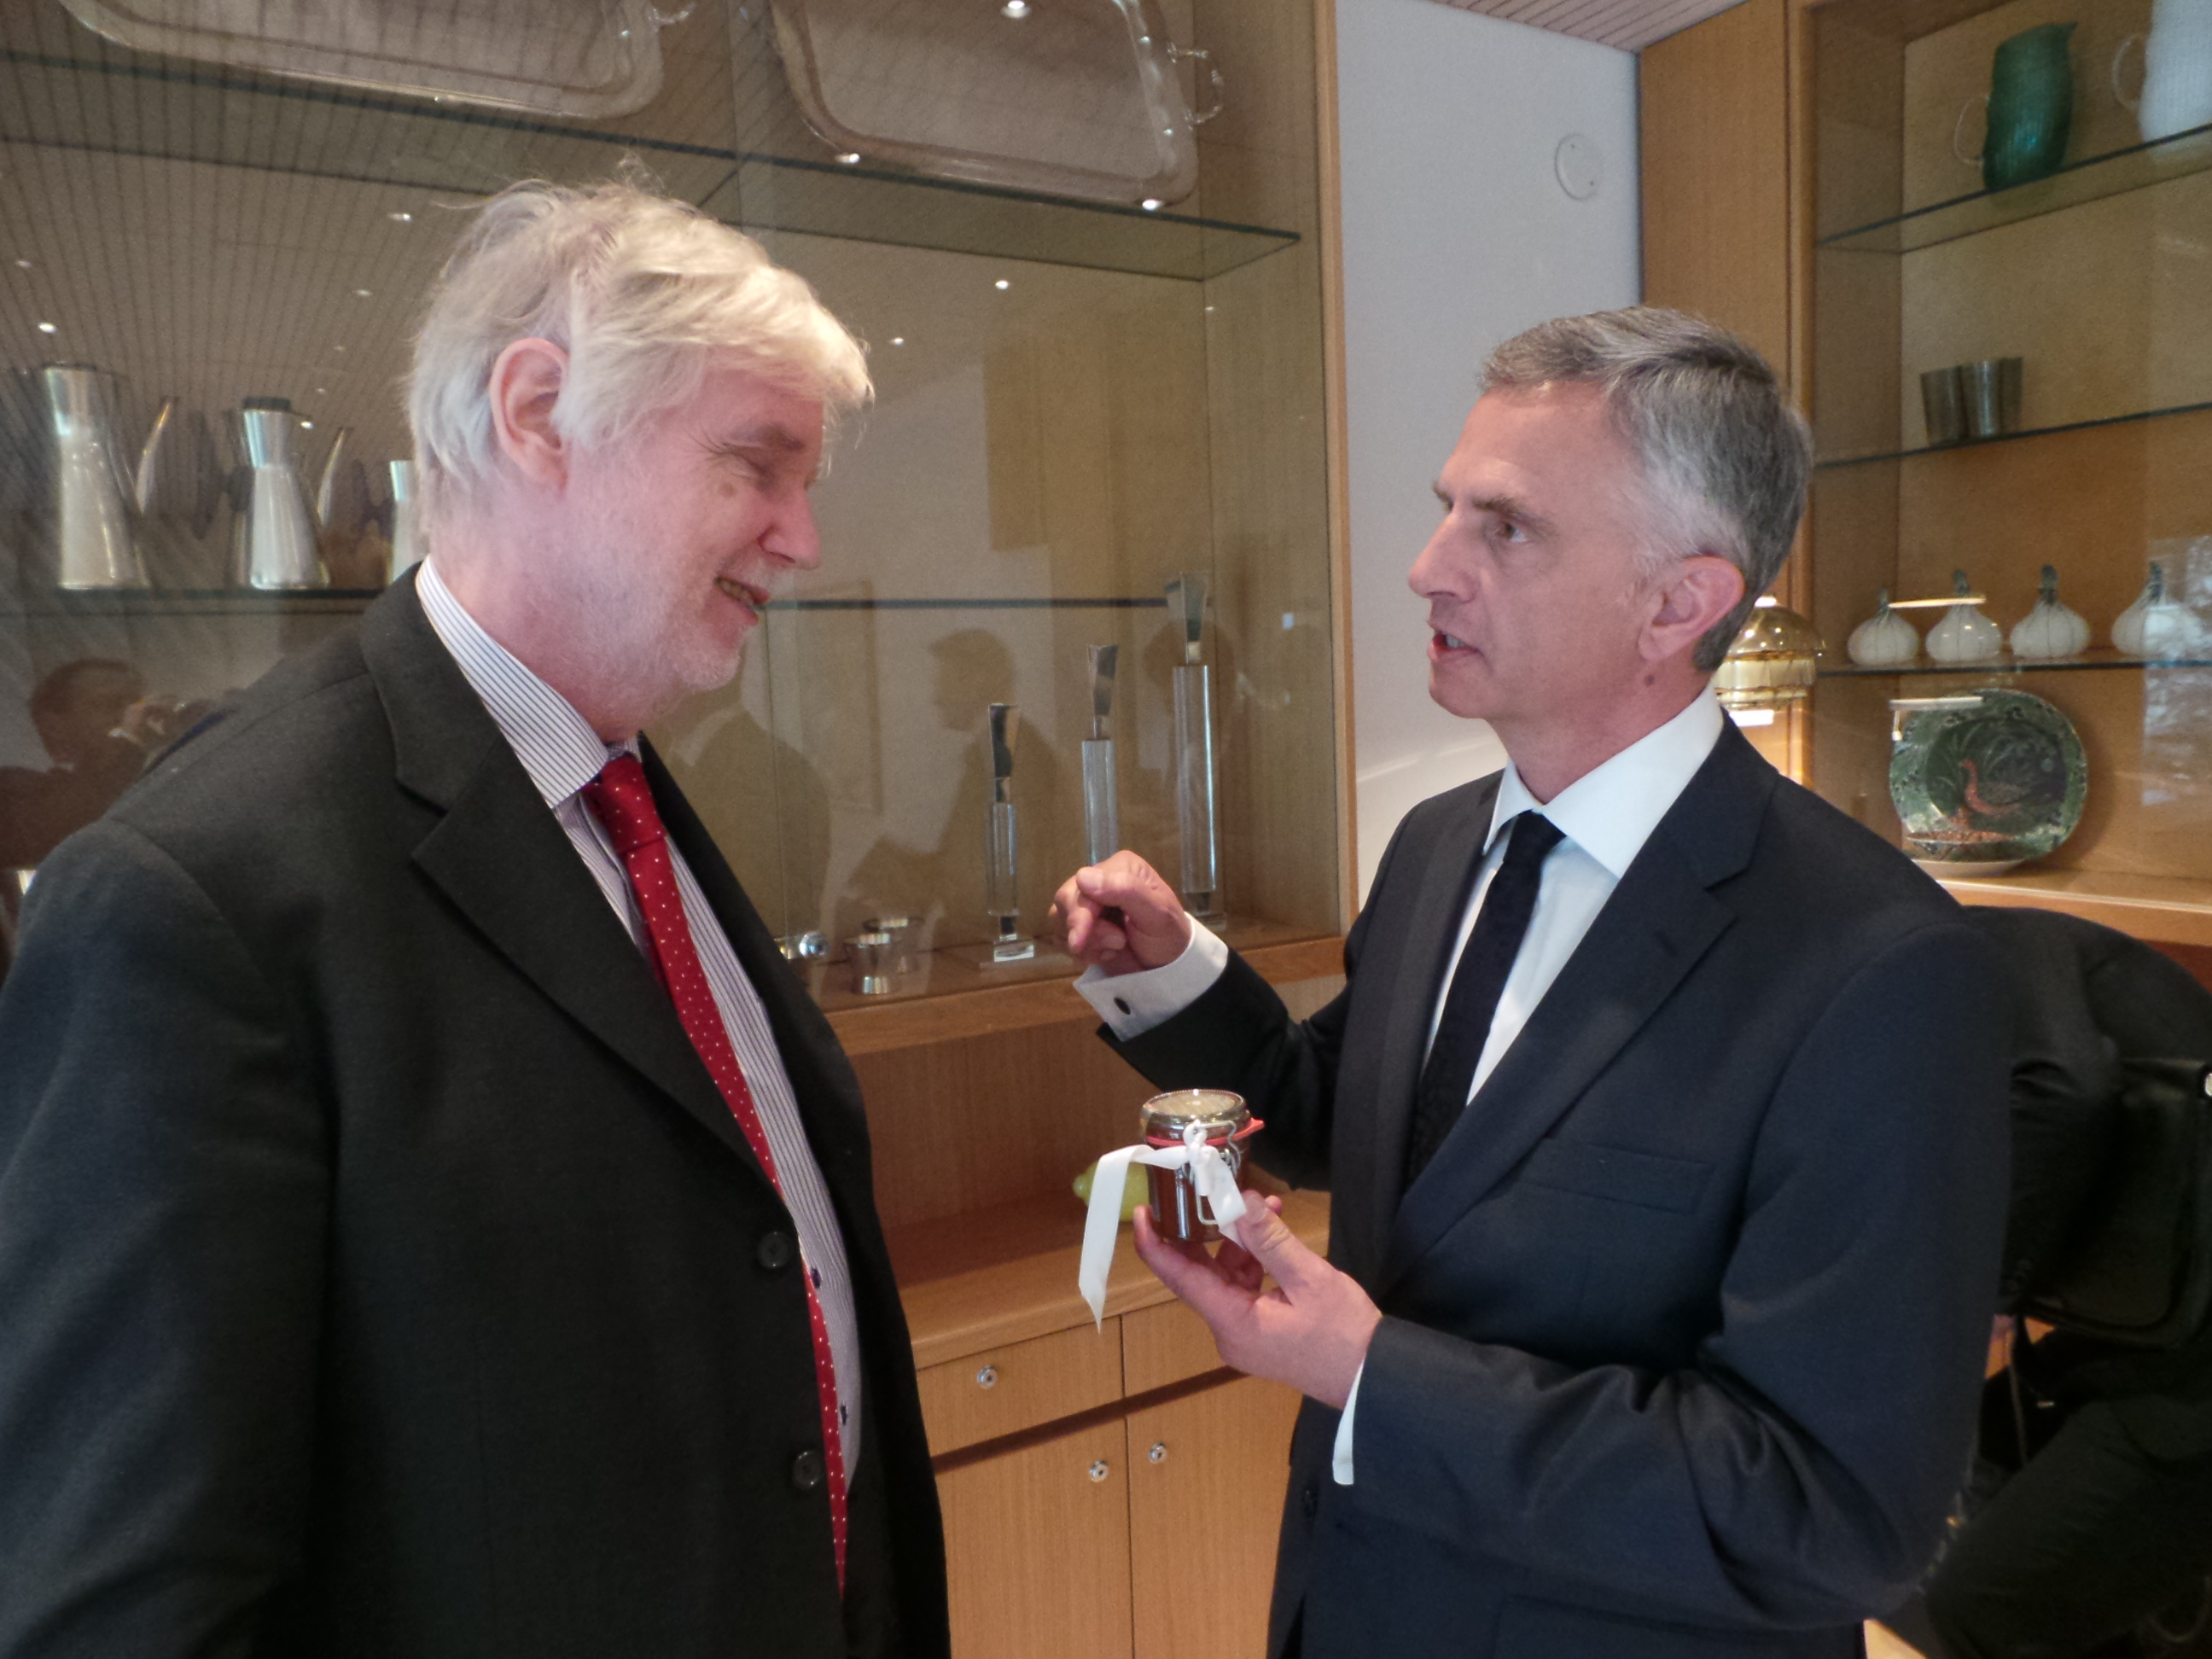 President of the Confederation Didier Burkhalter in discussion with Finnish Minister of Foreign Affairs Erkki Tuomioja.